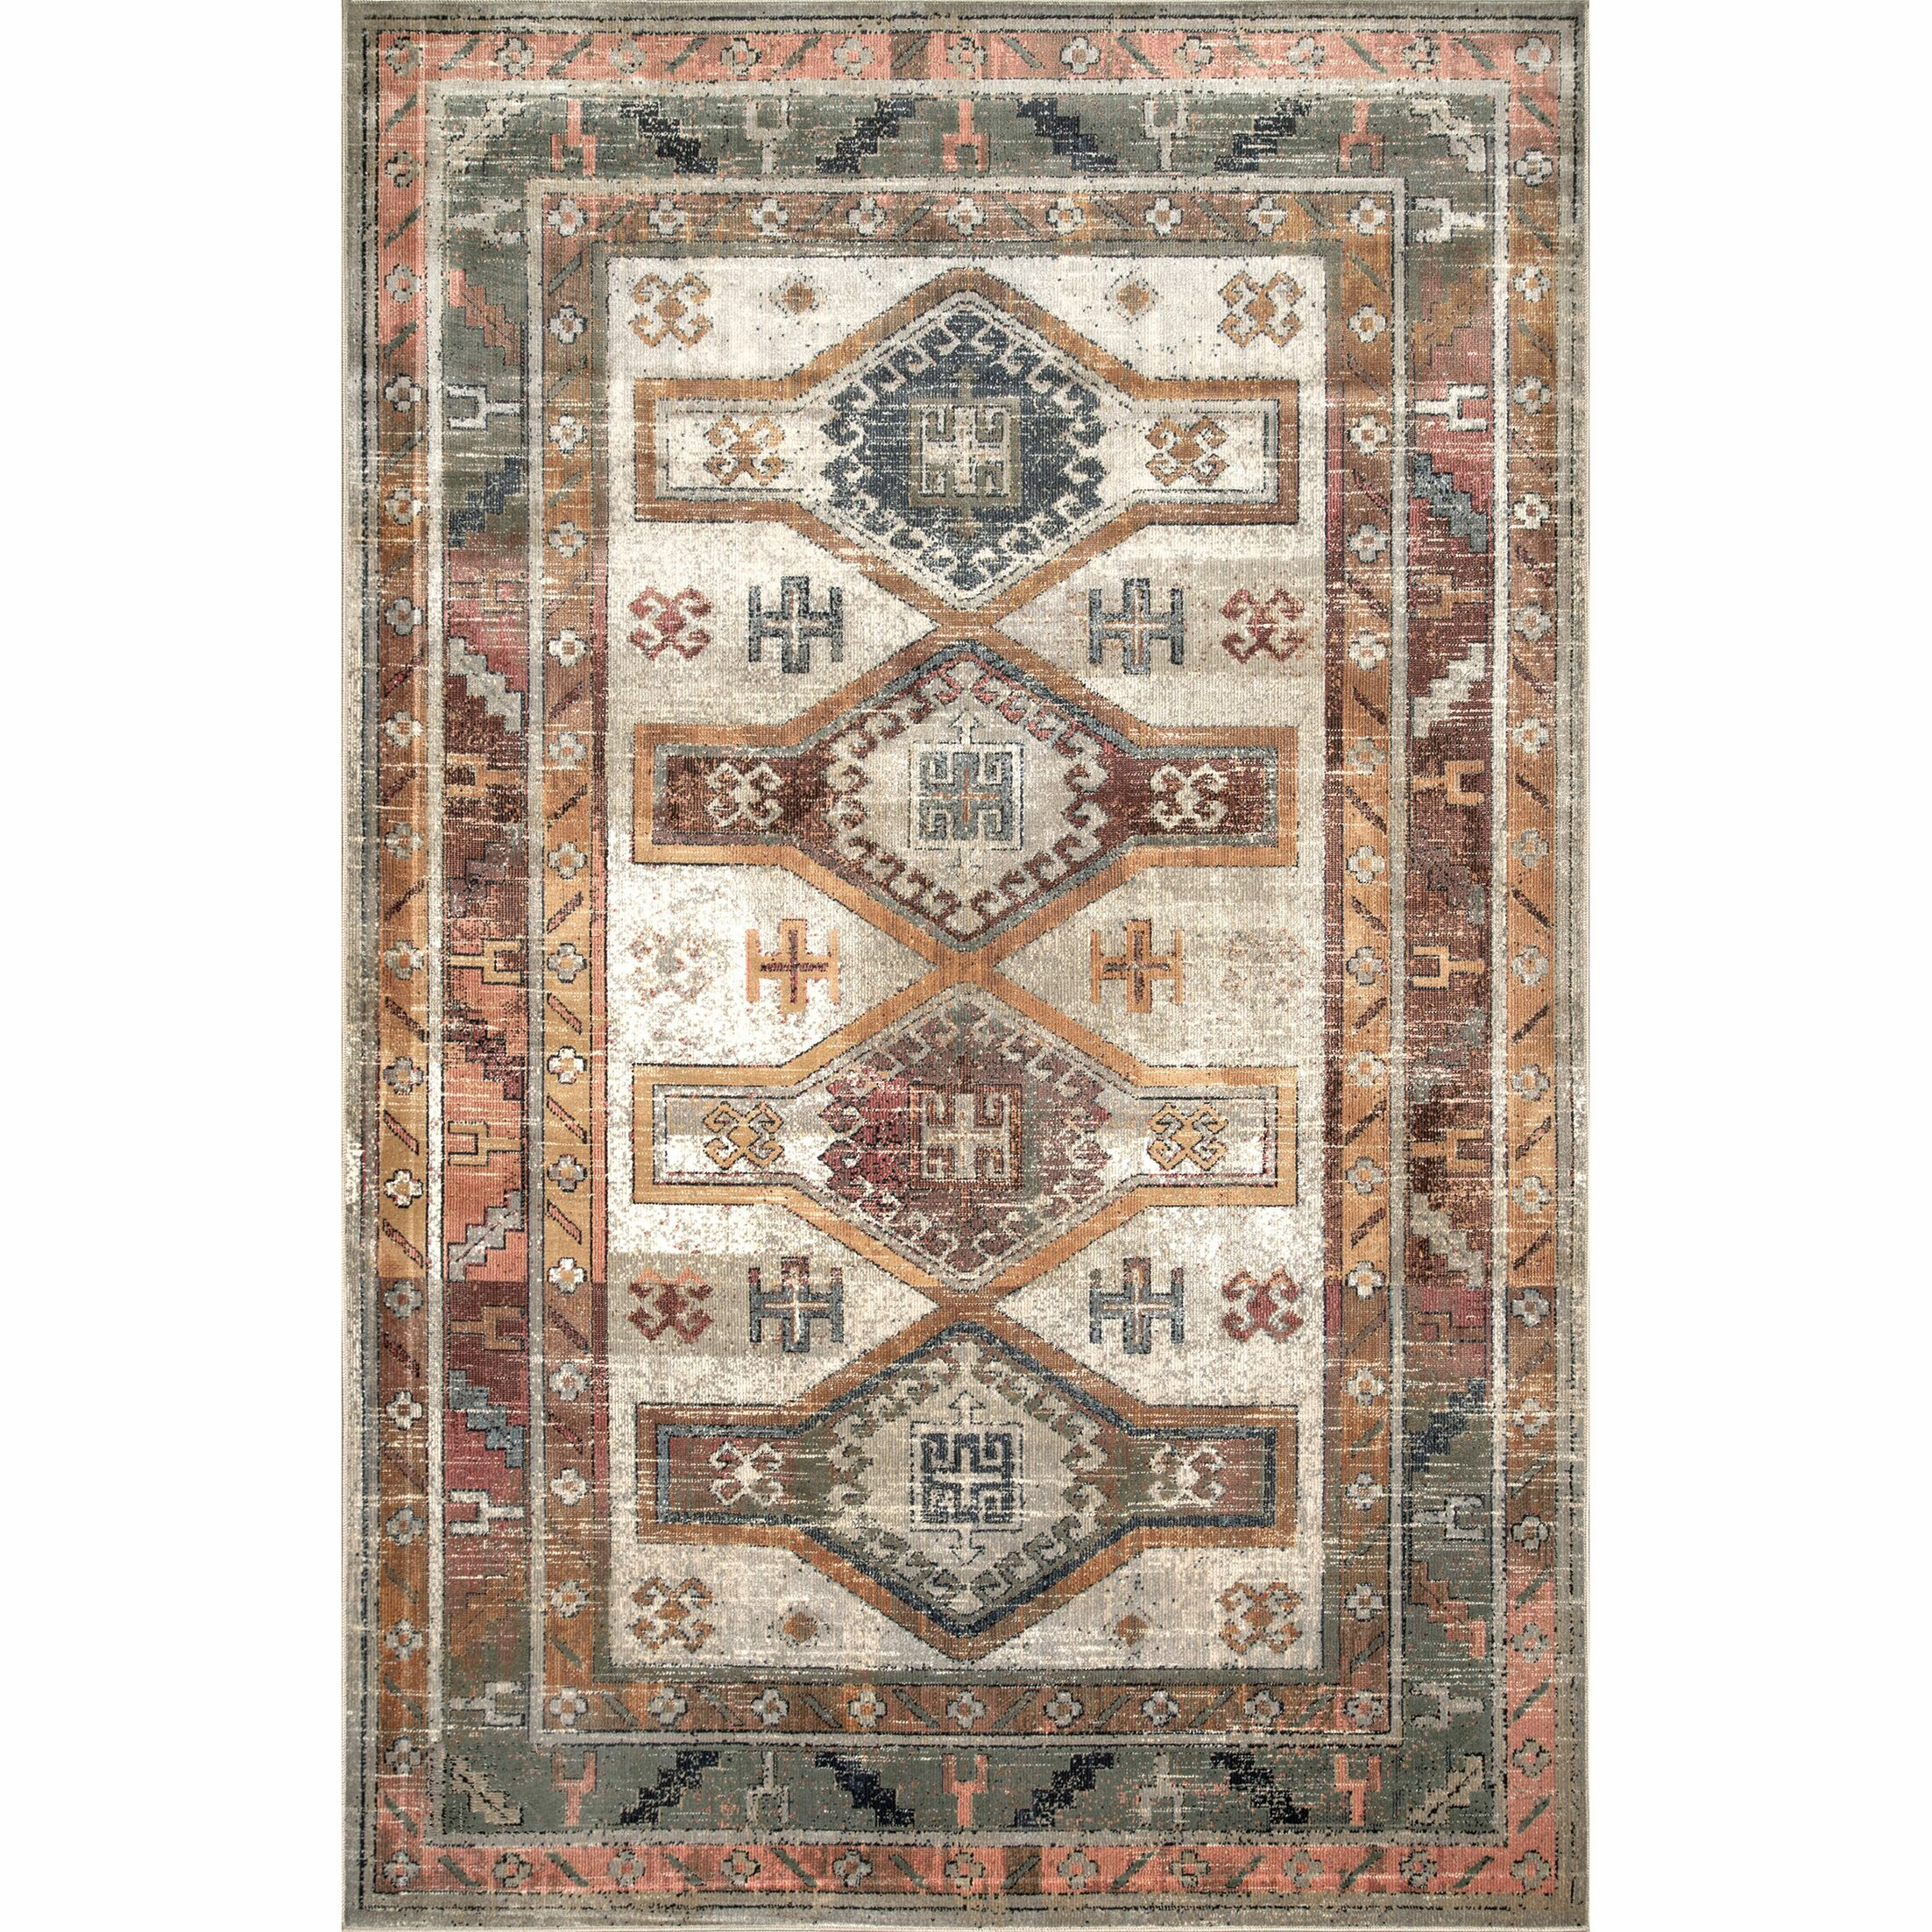 Round Hill Beige/Brown Area Rug Rug Size: Rectangle 9' x 12'